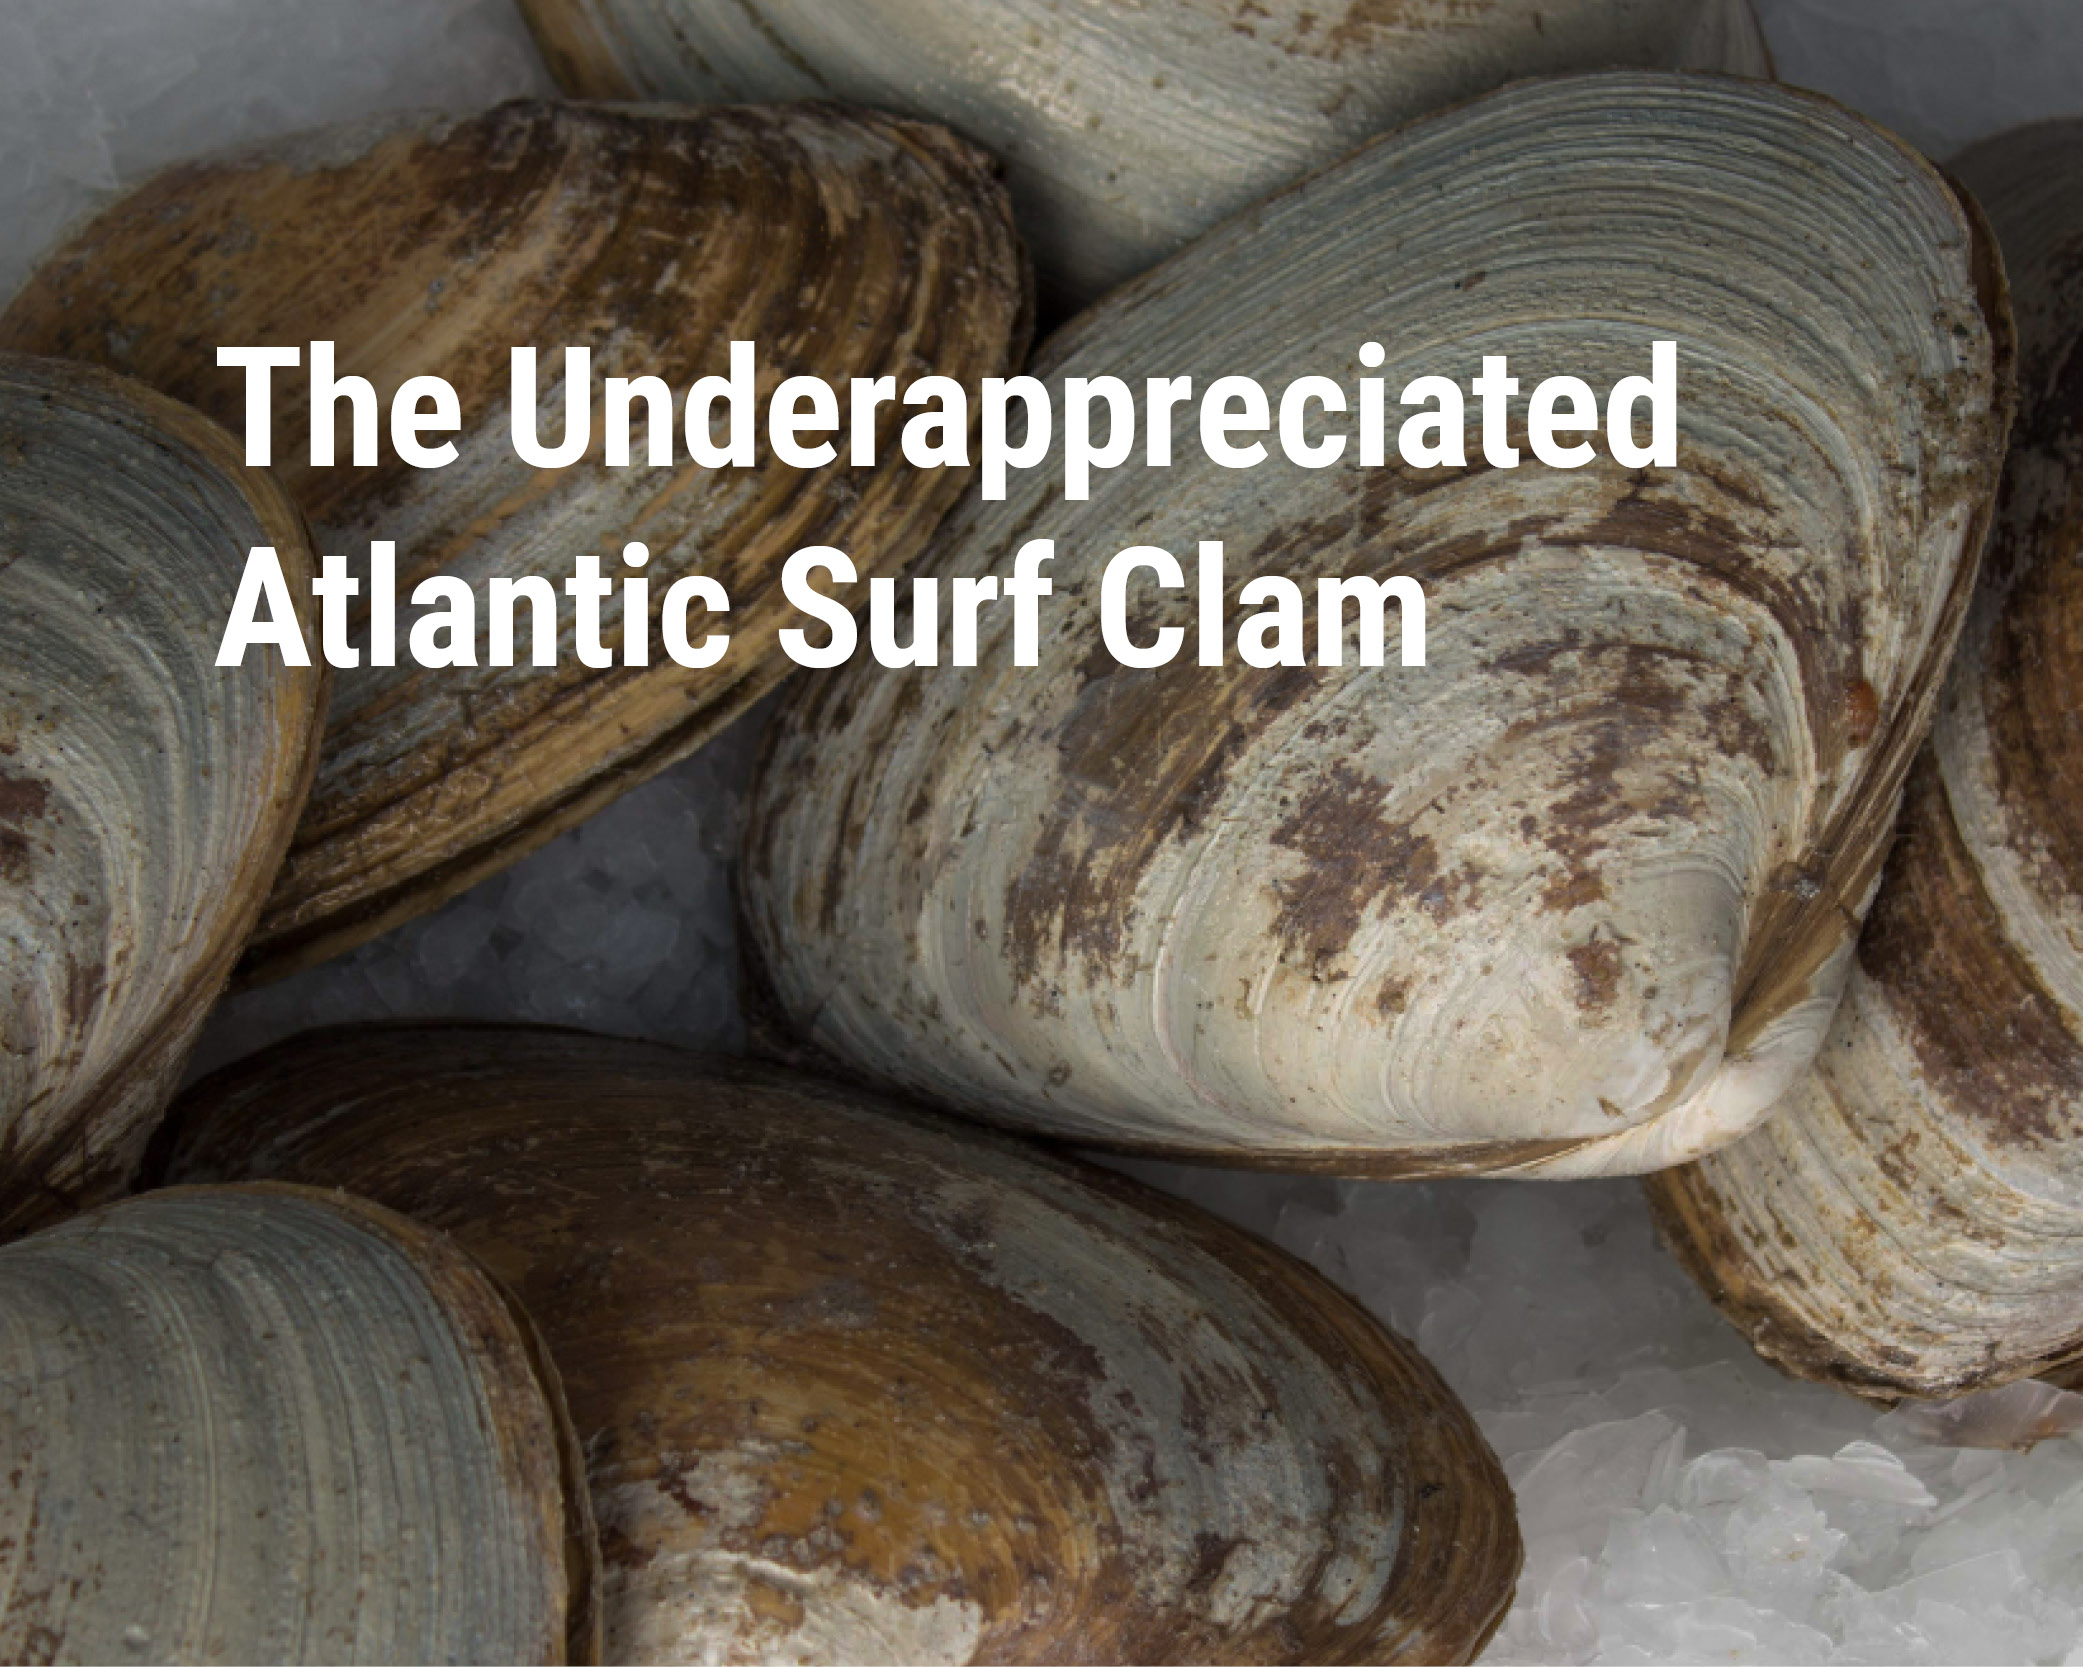 underappreciated surf clam.jpg